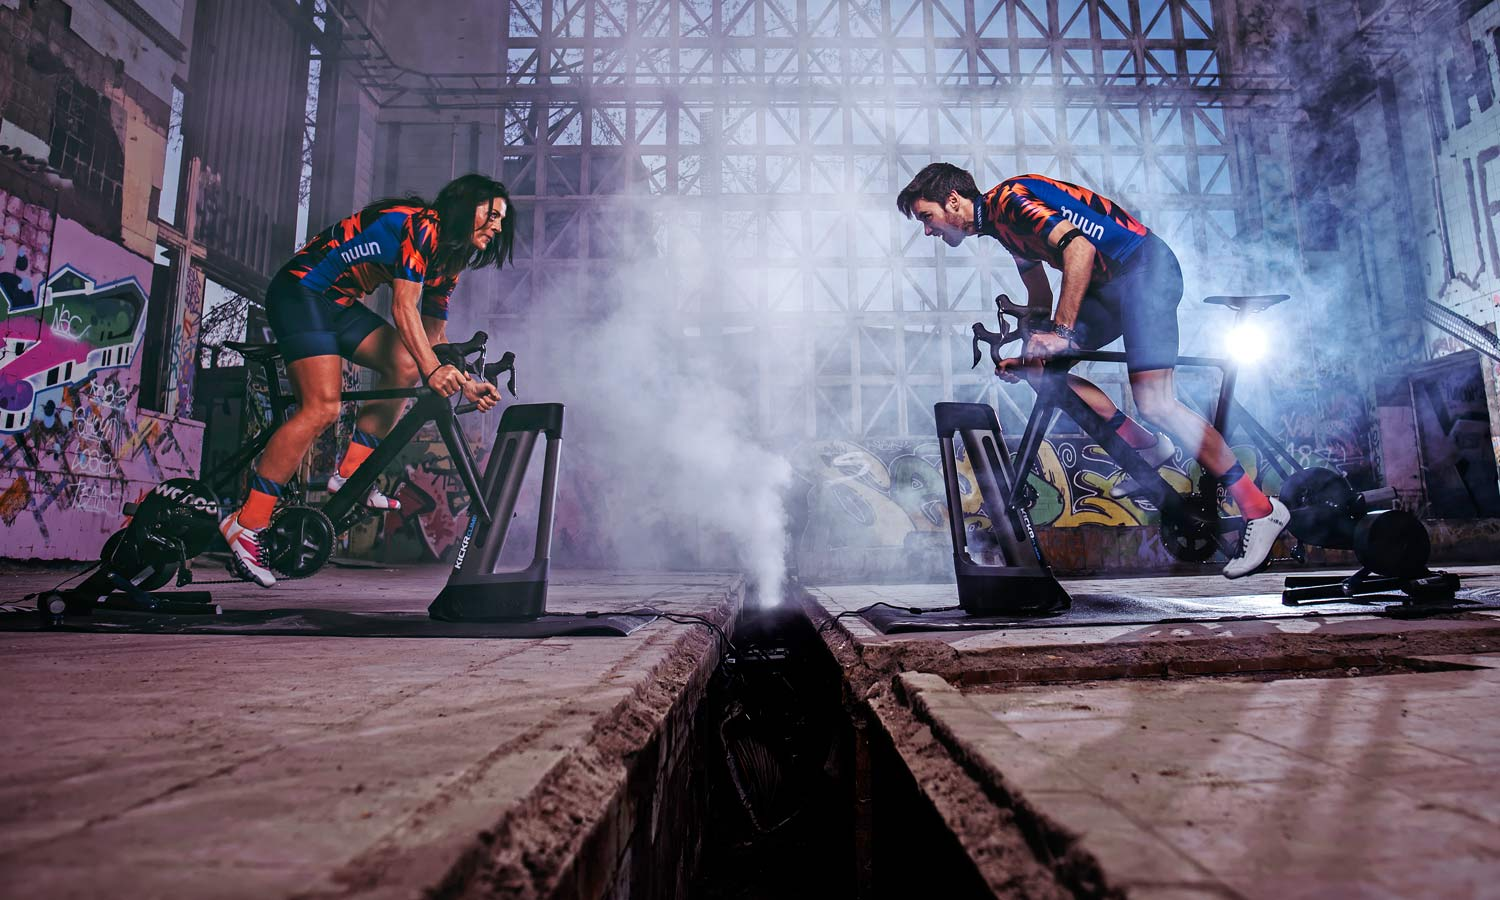 Canyon officially approves a number of bikes for turbo trainer usage, Canyon ZCC eRacing team indoor training, photo by Rene Zieger